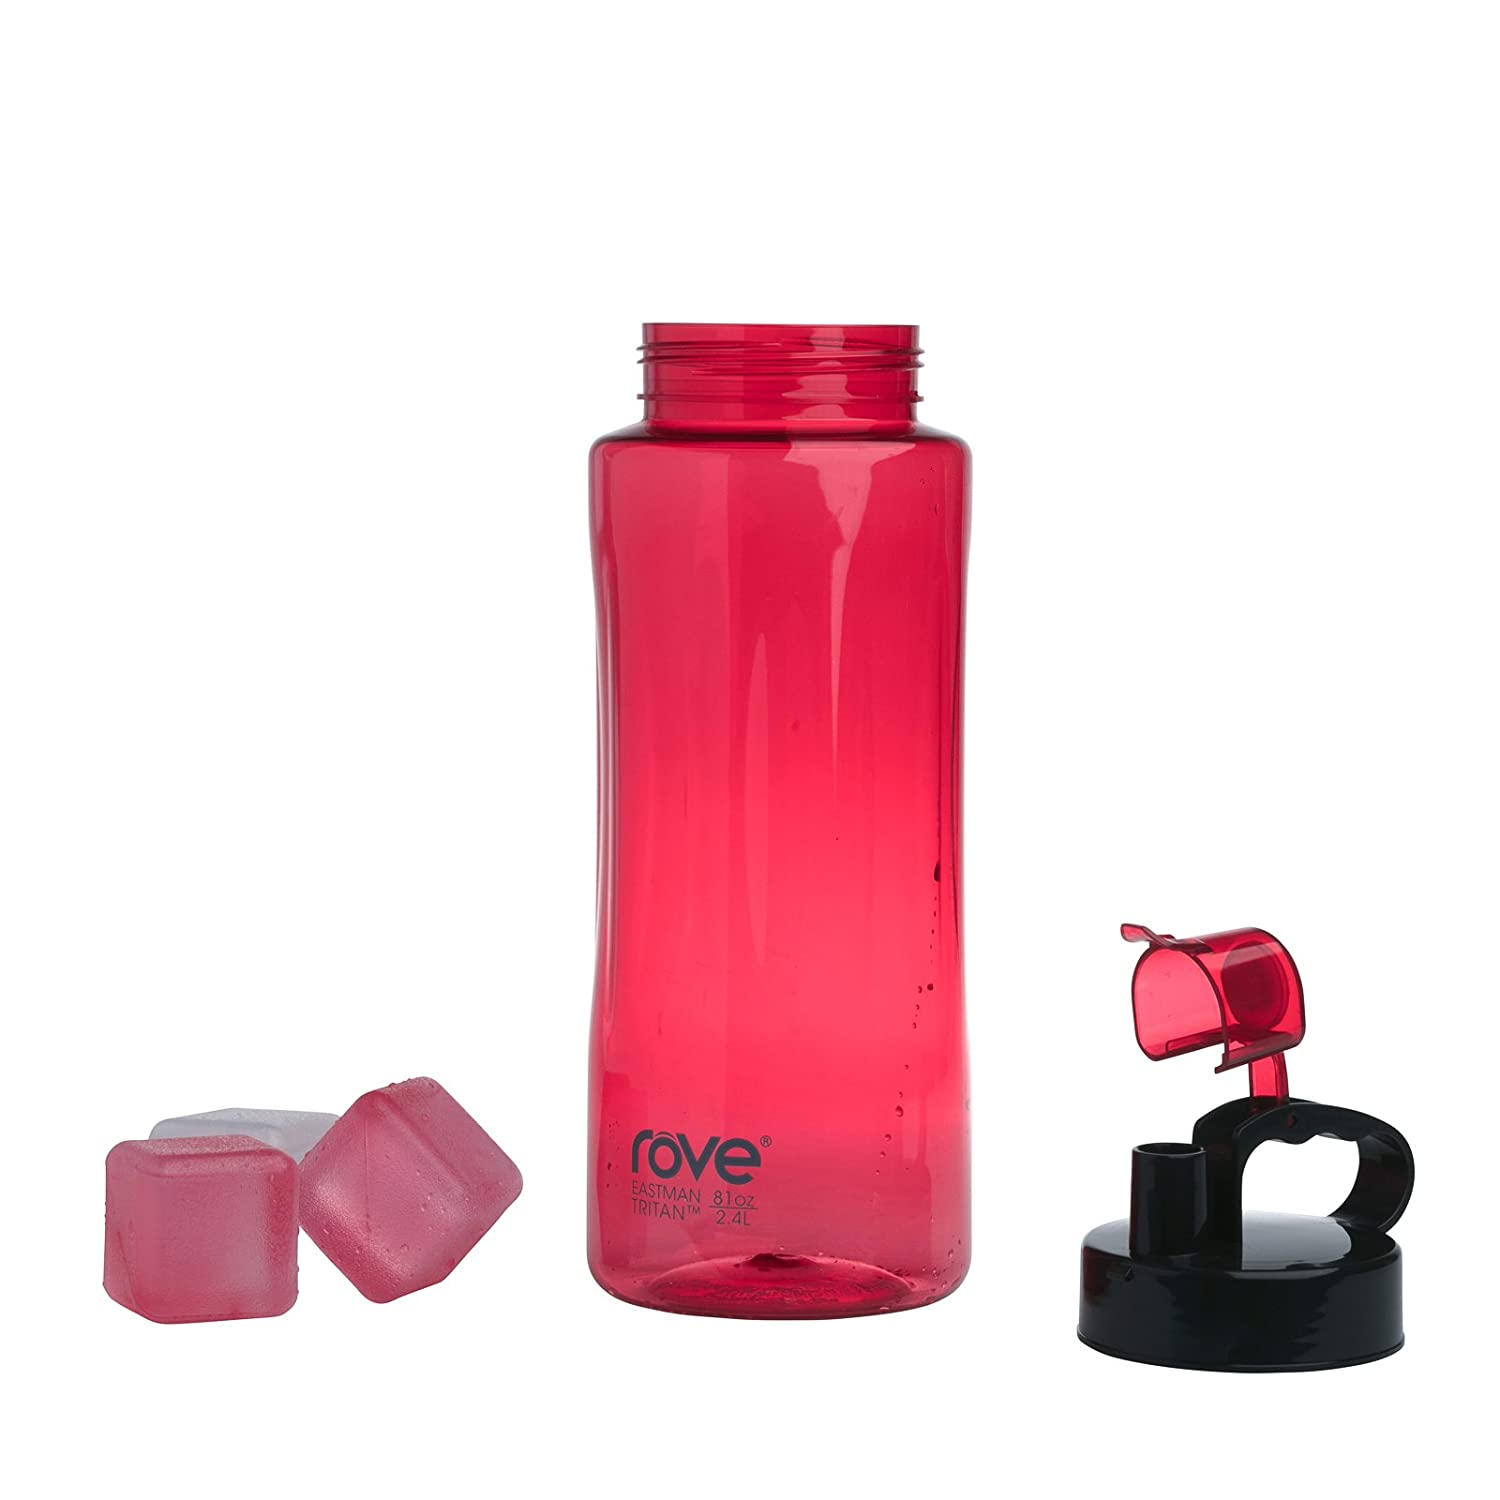 7bb0efc0e341 Rove 2.4L / 81oz Single Wall Tritan Water Bottle with 3 Big Reusable Ice  Cubes - All Day Long